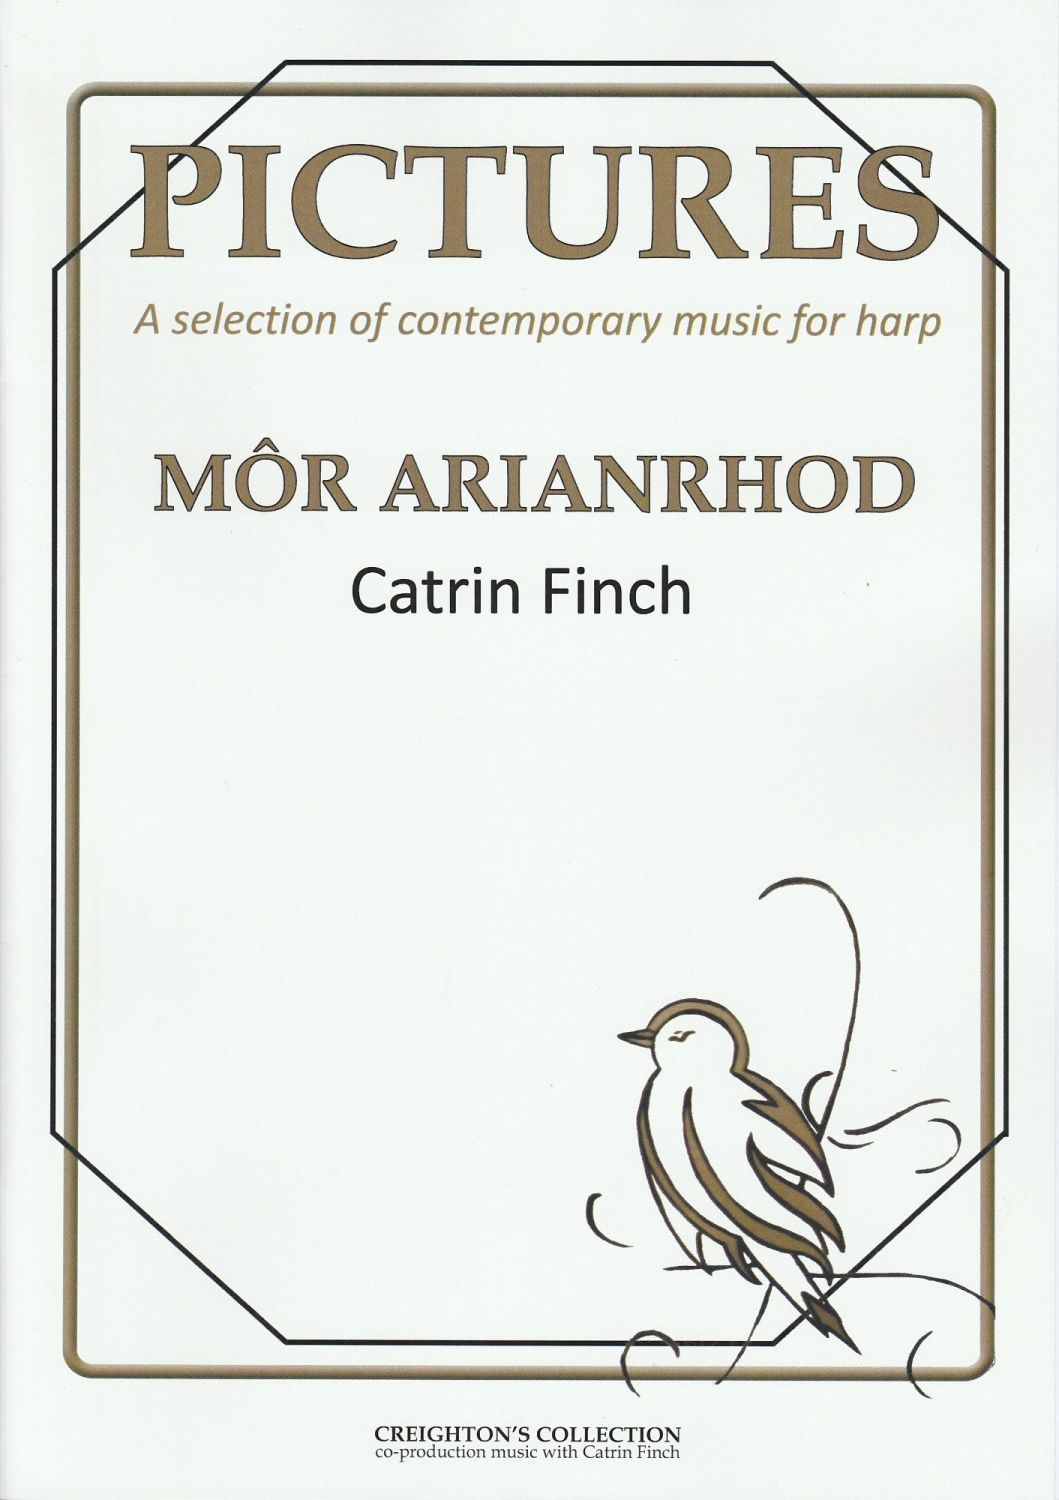 Pictures - Môr Arianrhod - Catrin Finch